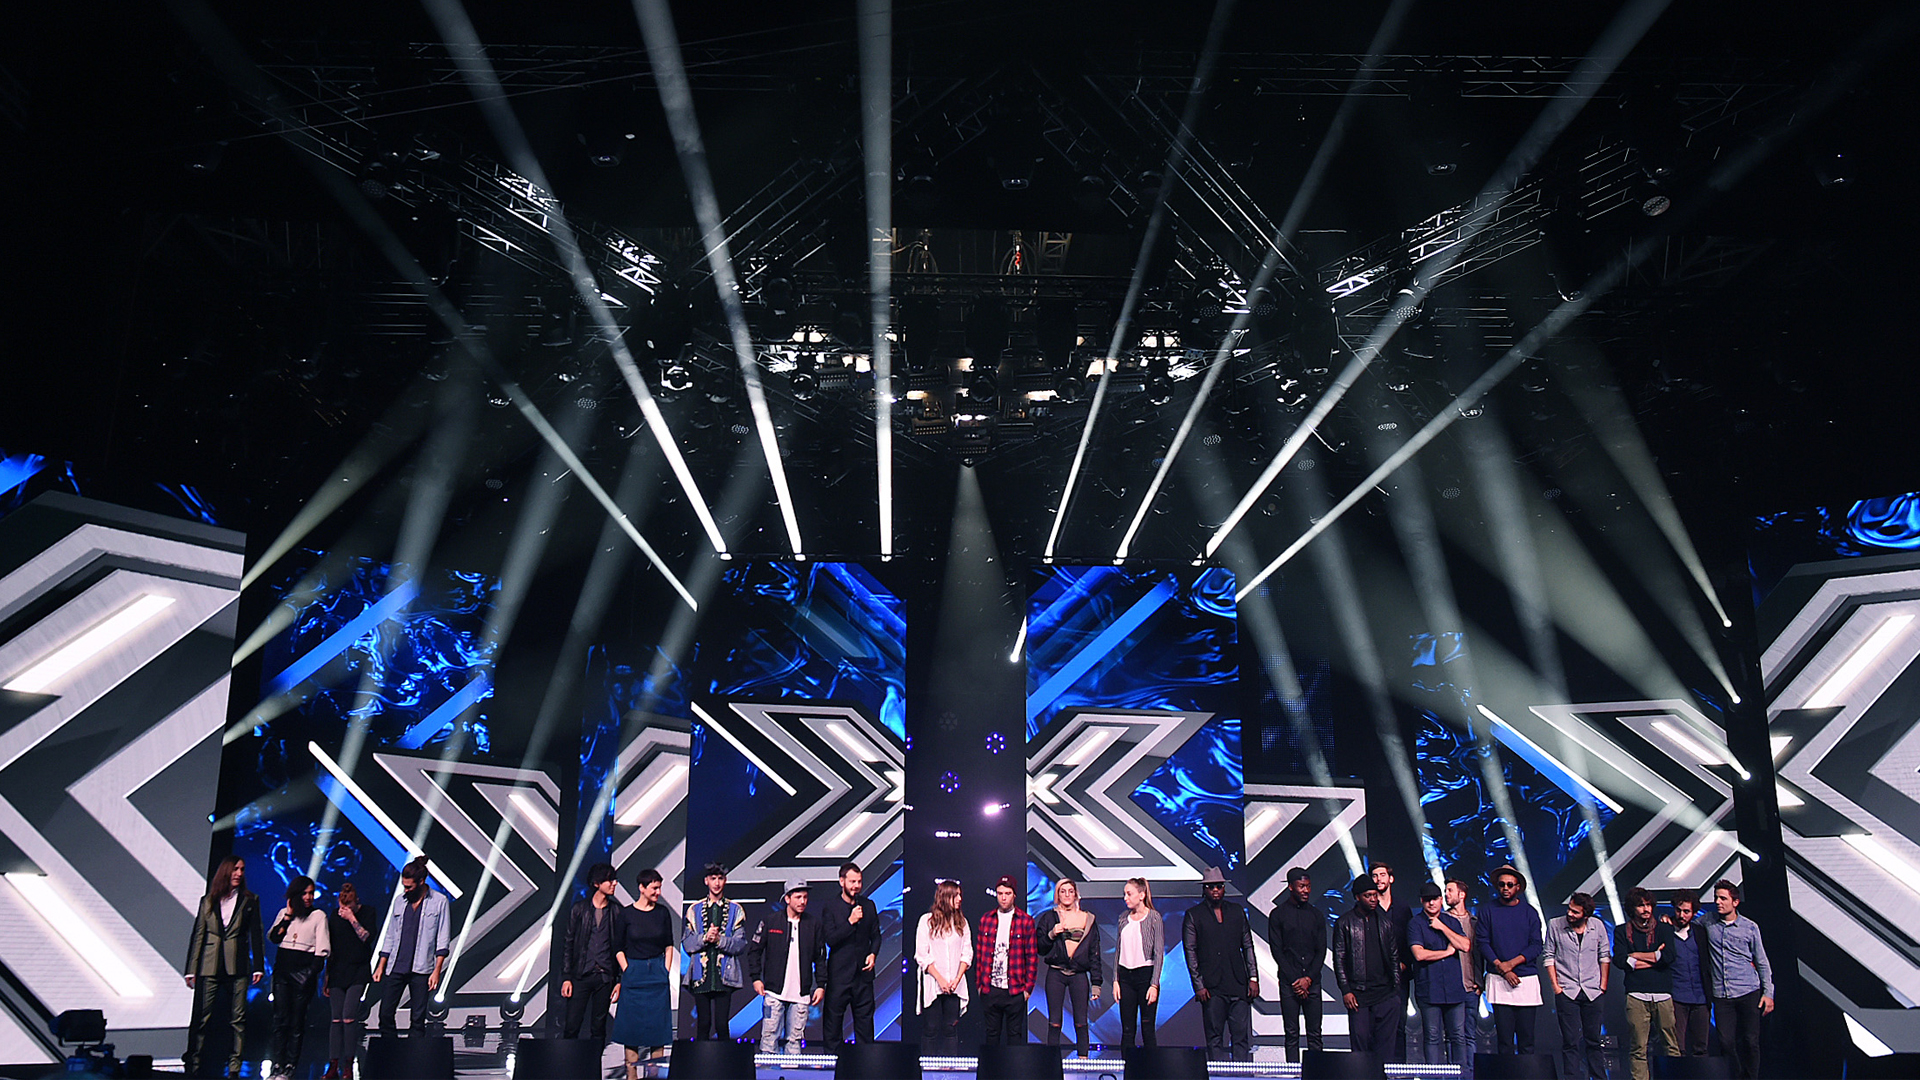 Prolights has the X Factor in 2016